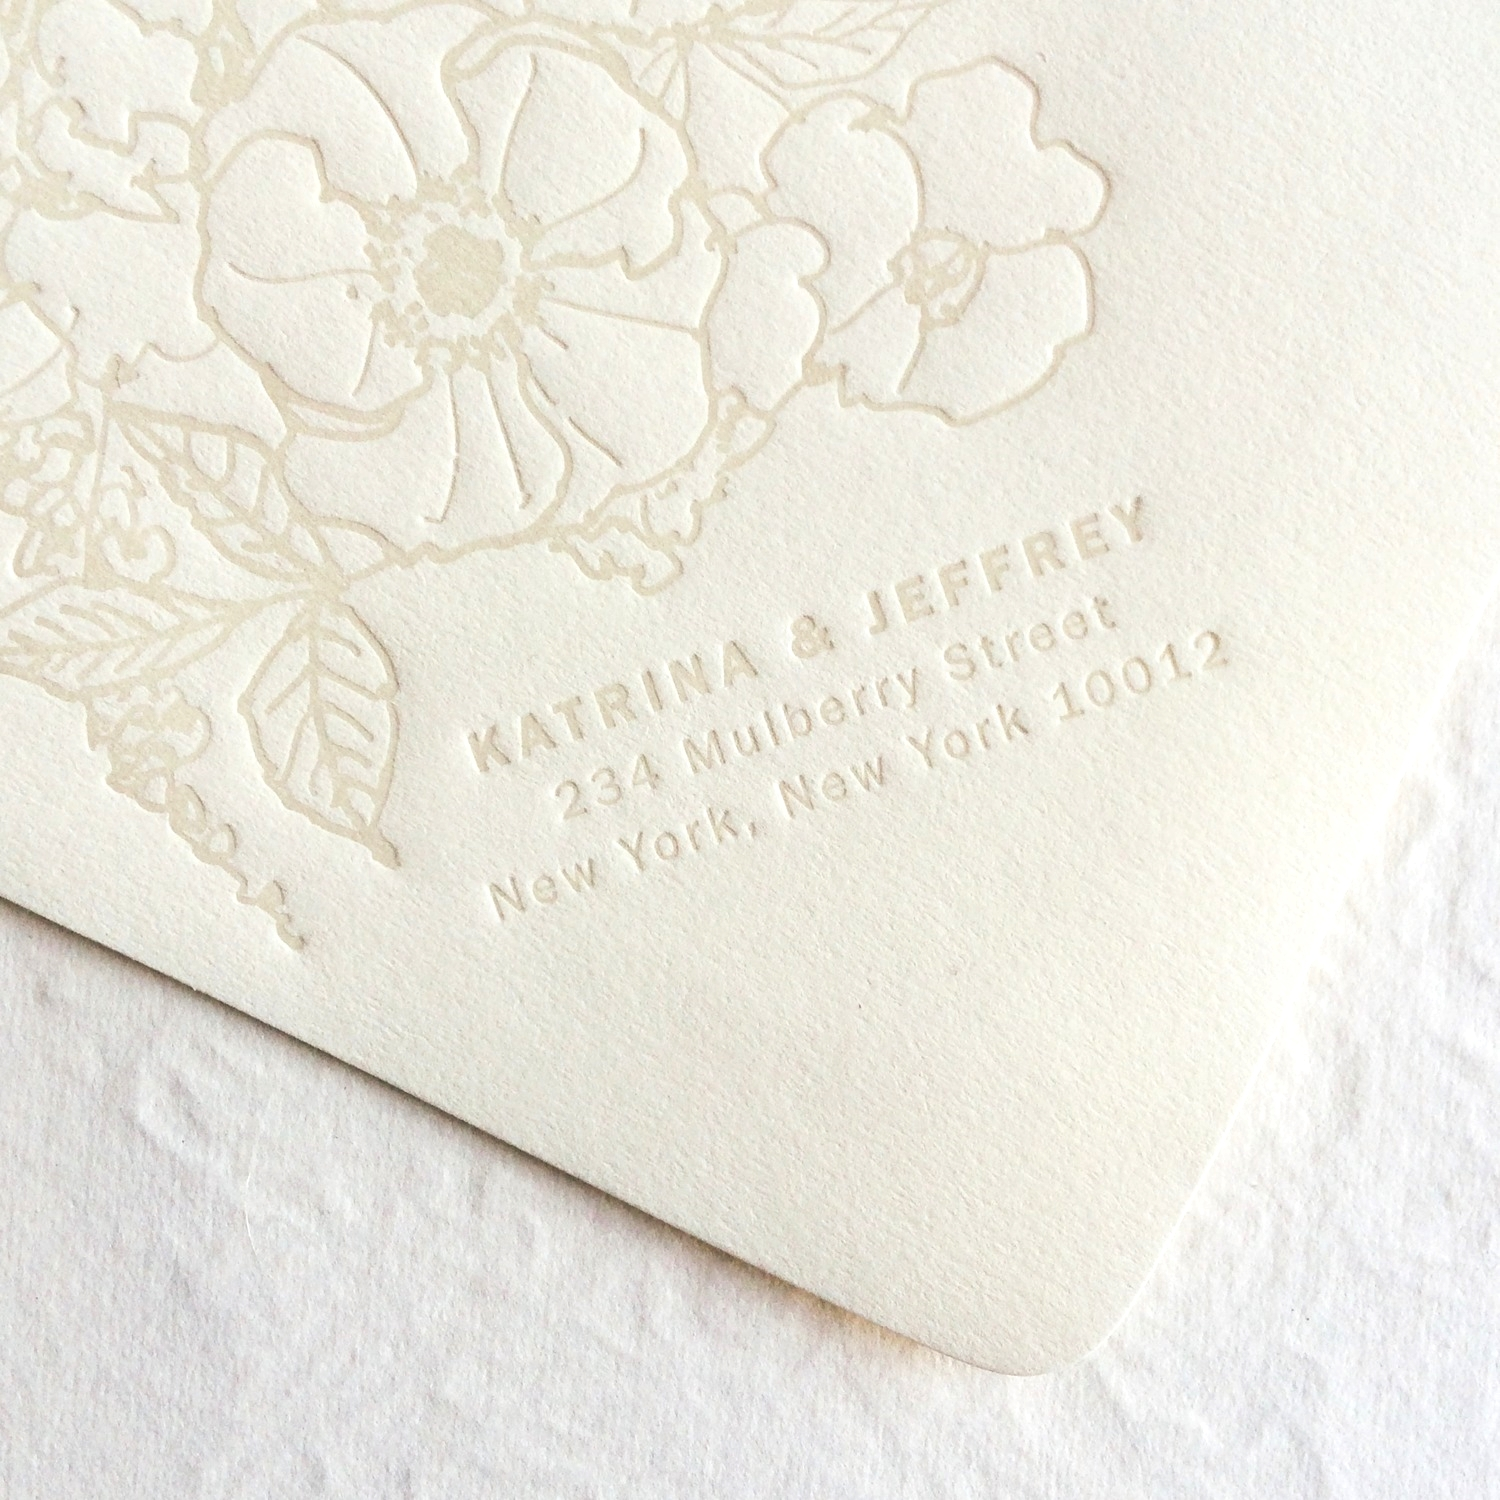 Allover Floral Invitation / Paper & Type